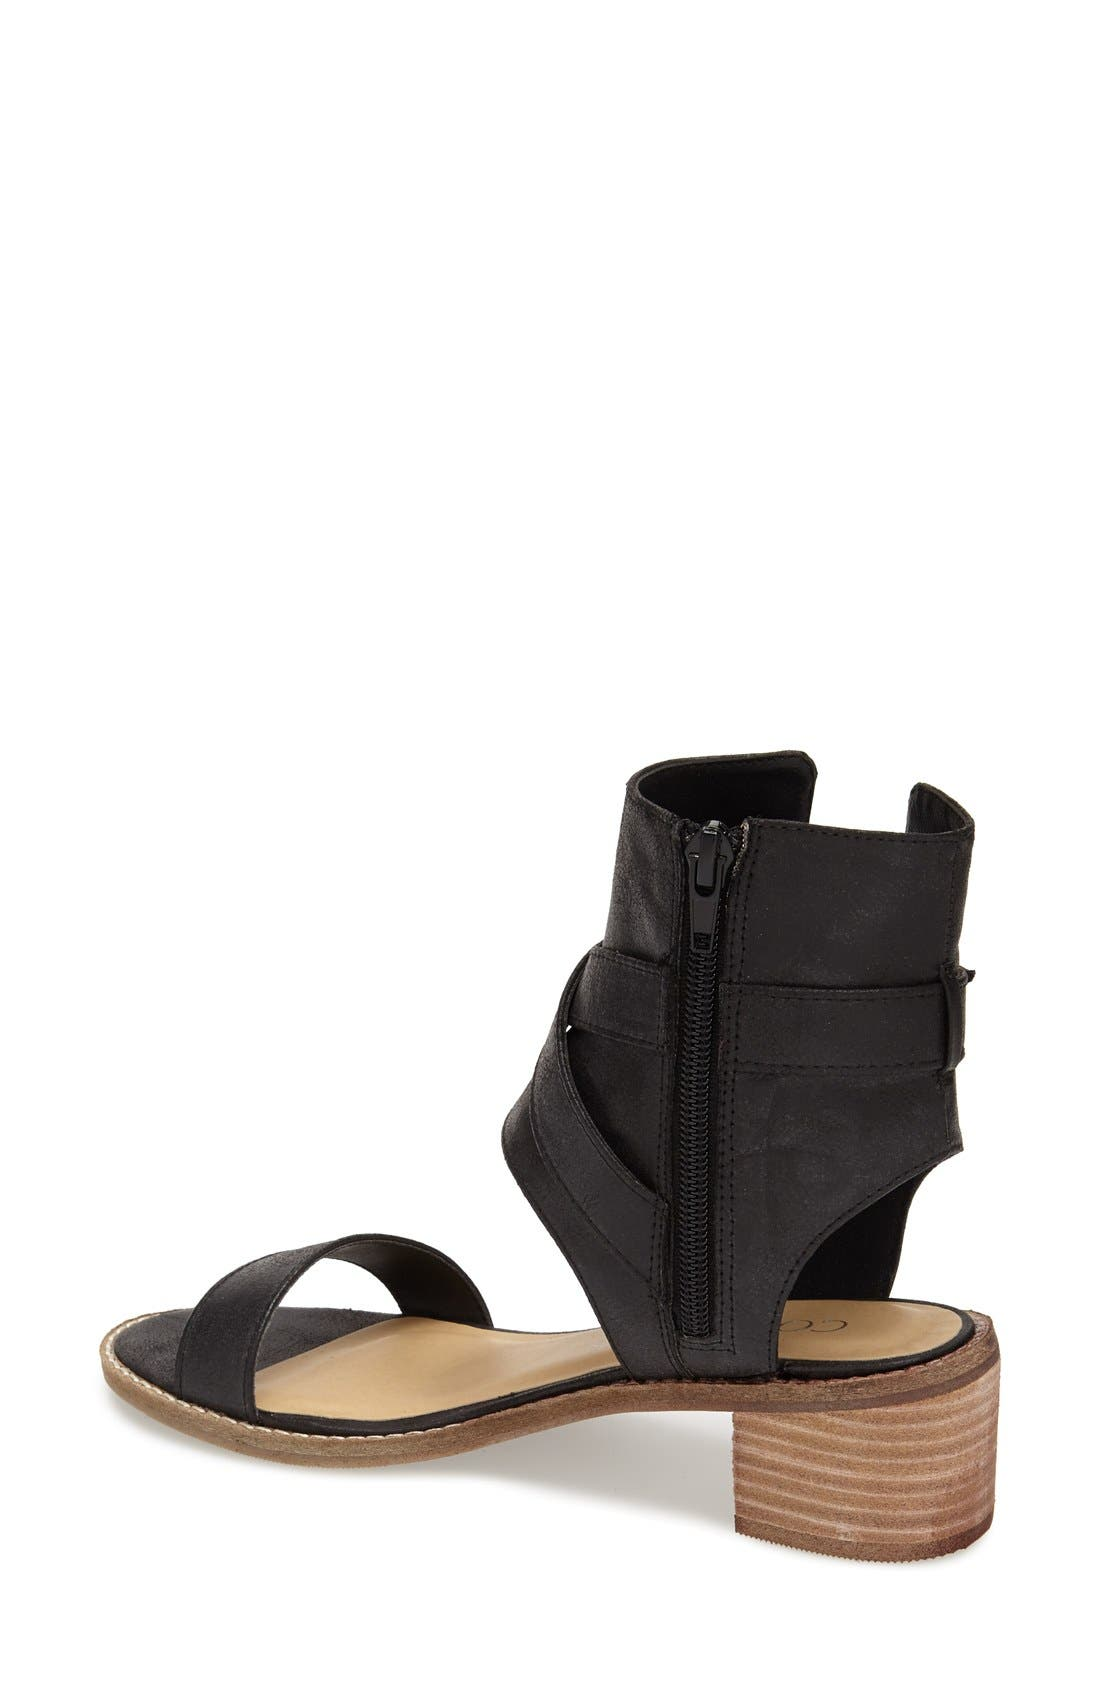 Alternate Image 4  - Coconuts by Matisse 'Tudor' Ankle Cuff Sandal (Women)